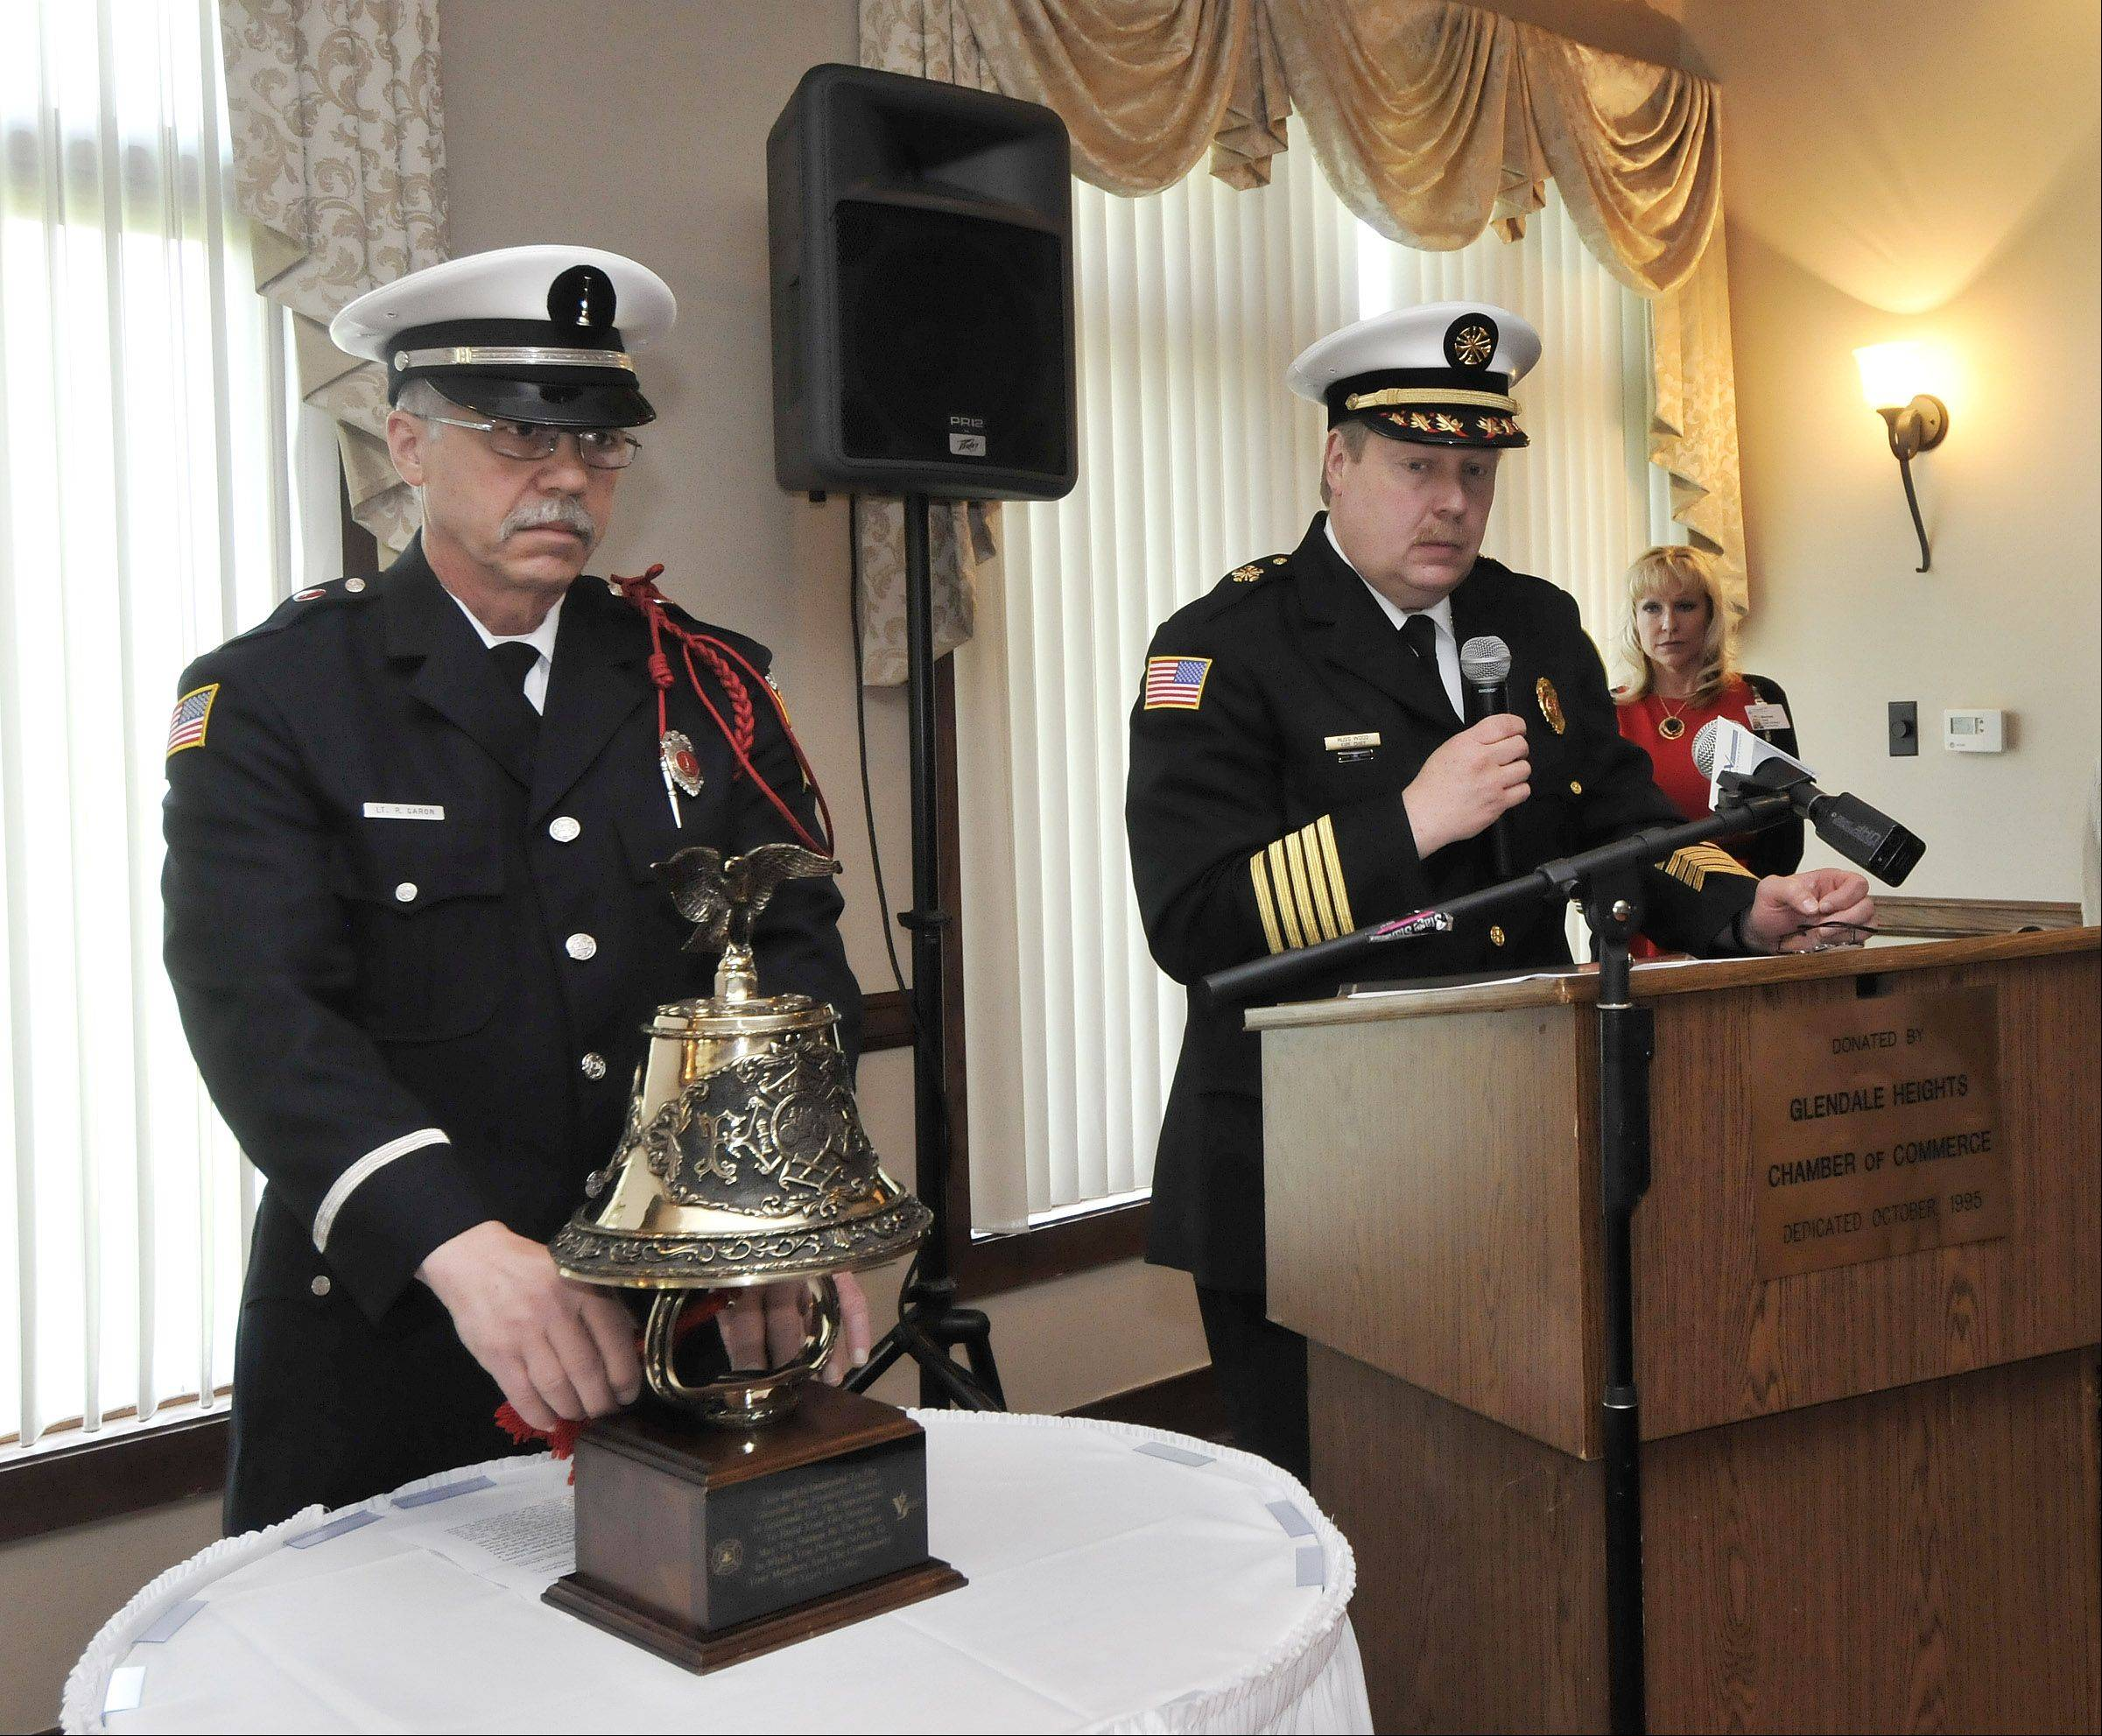 Glenside Fire Department Lt. Bob Garon, left, rings a memorial bell to honor fallen firefighters and other first responders, while Glenside Fire Department Chief Russ Wood, right, reads a list of those honored.